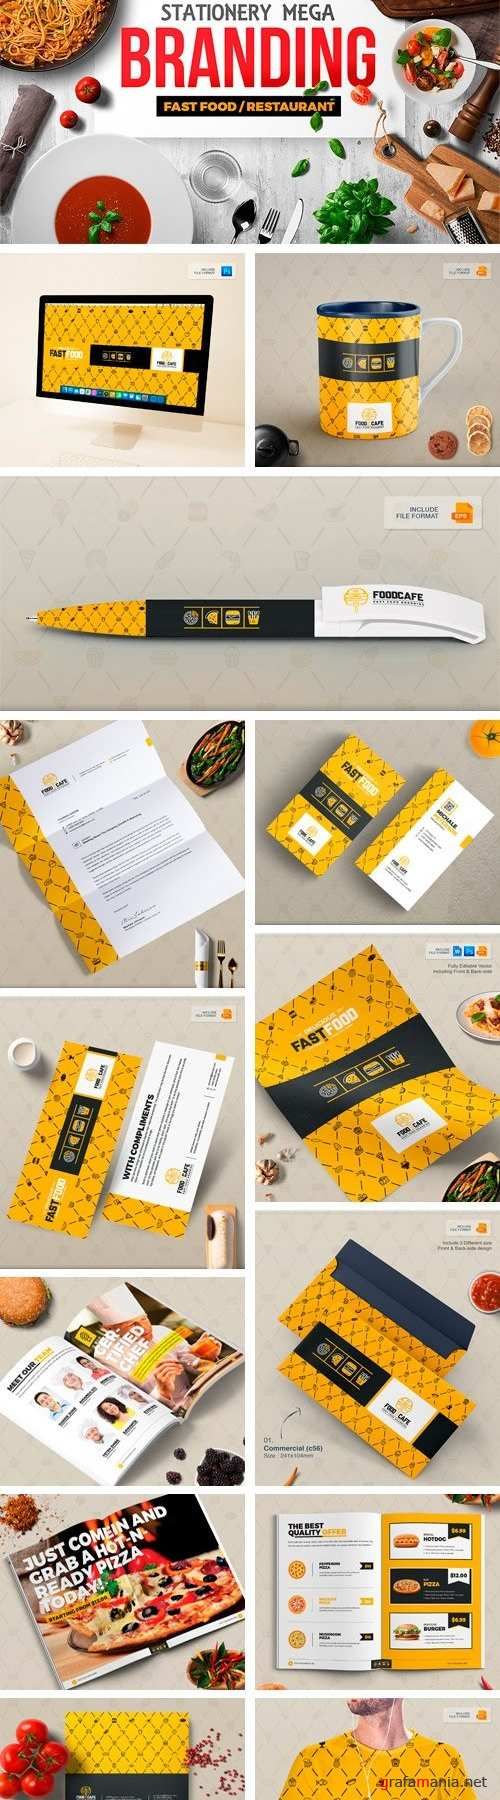 Branding Identity for Fast Food - 2123409 - 20193465